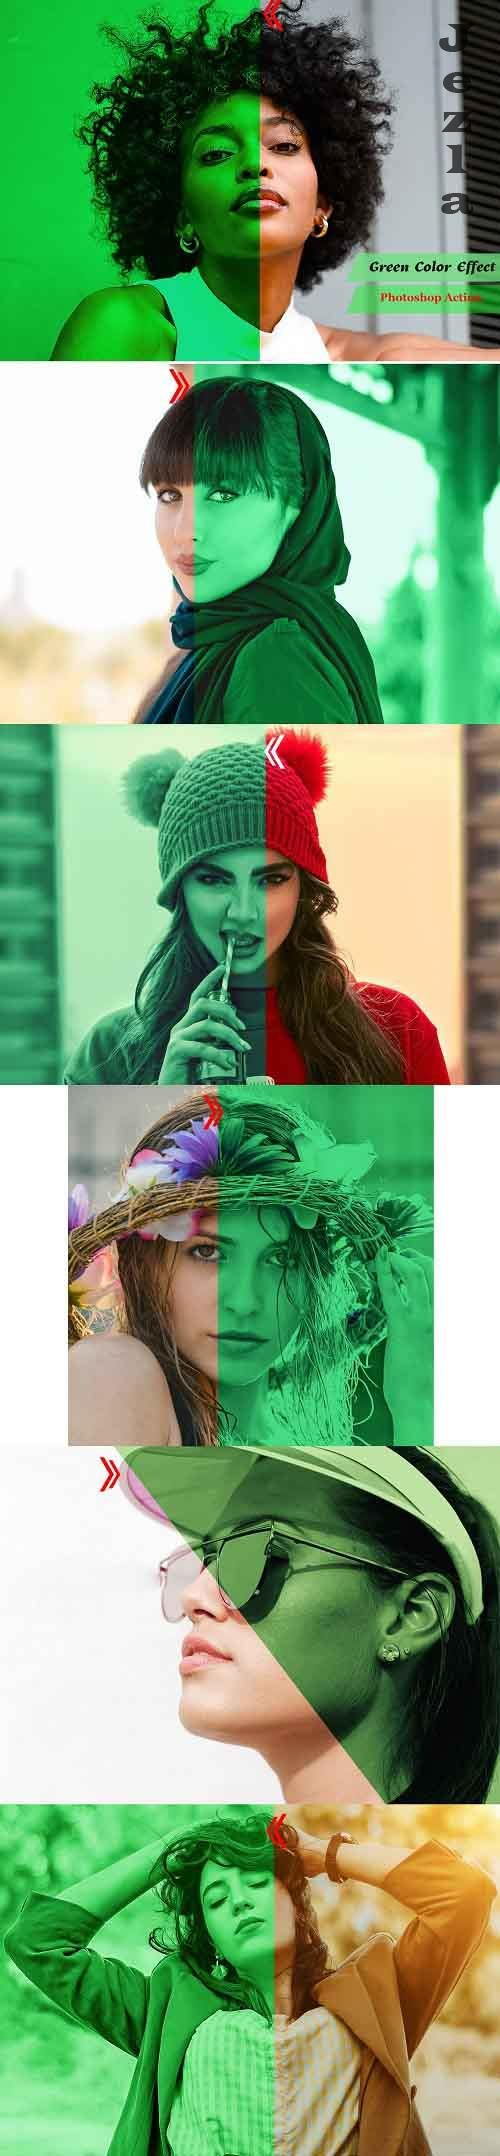 Green Color Effect PHSP Action - 4939667